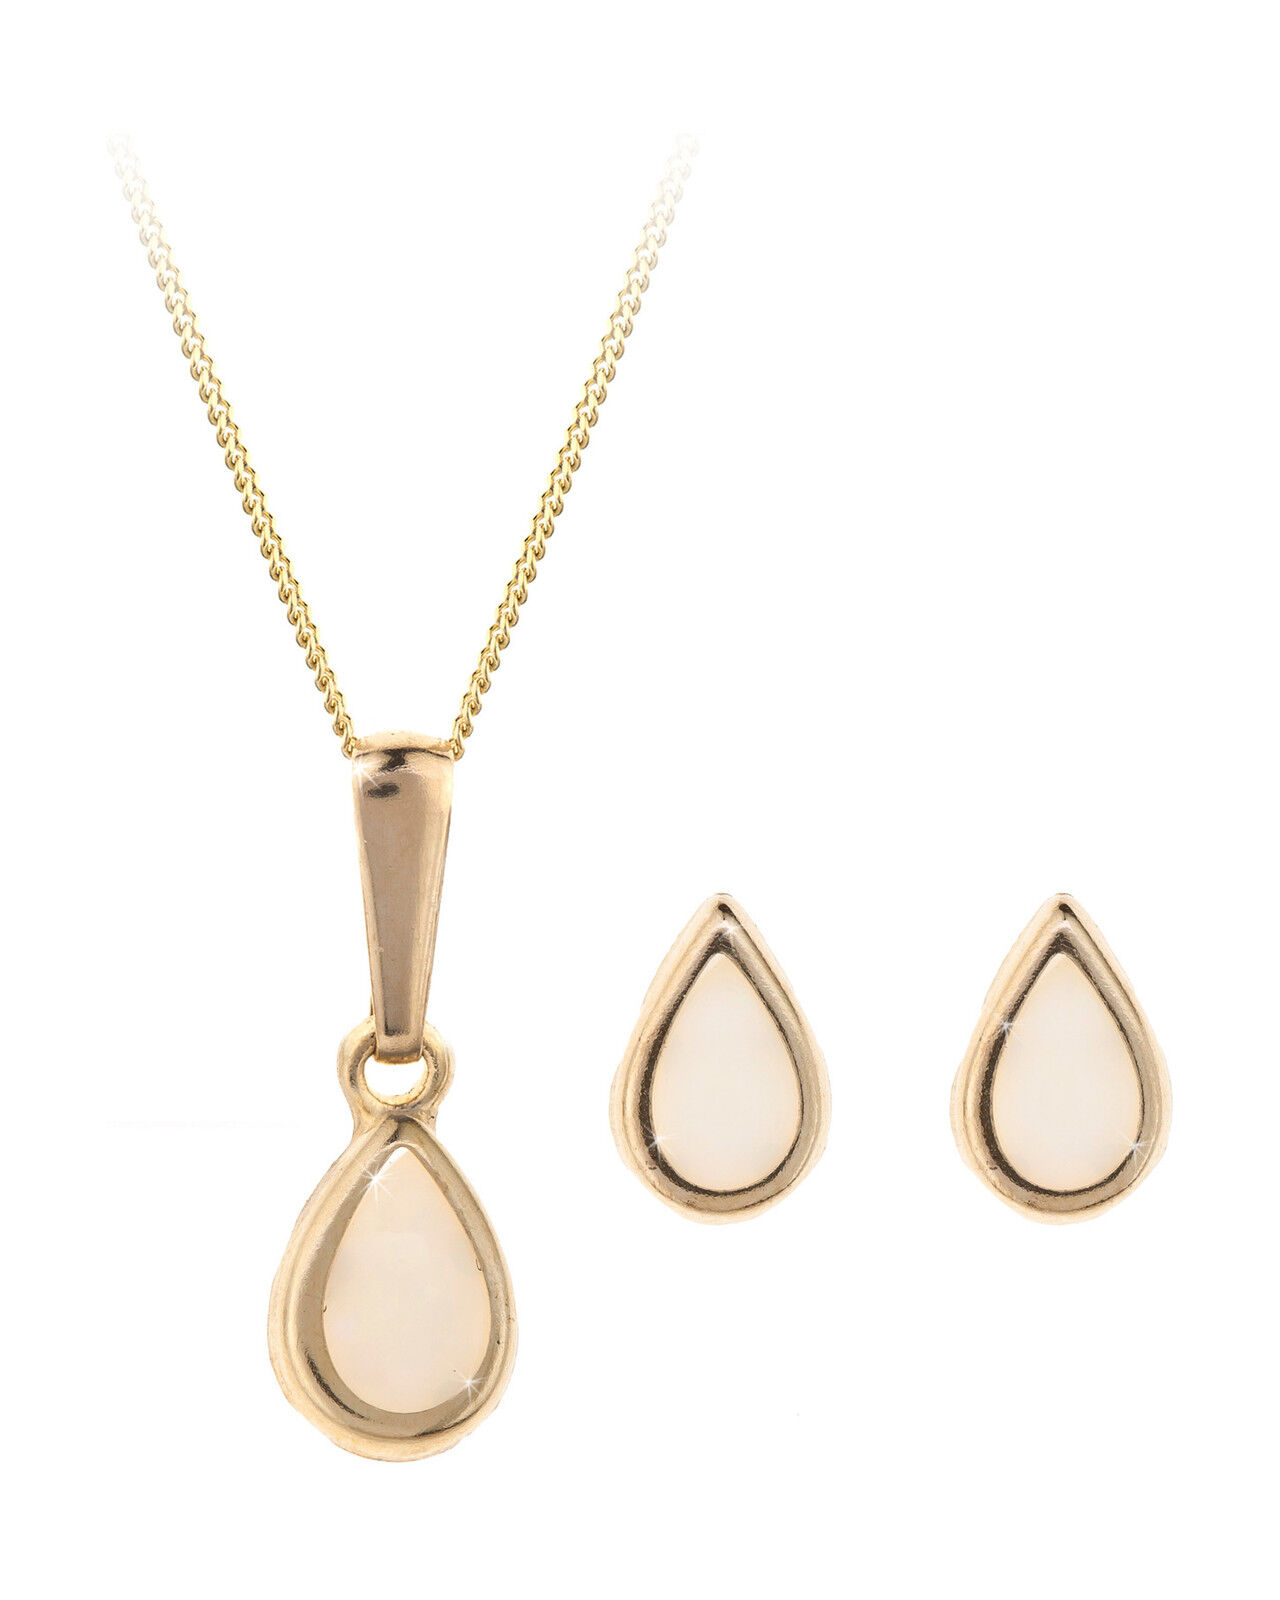 9ct gold October (opal) birthstone earring, pendant & chain set. Gift box